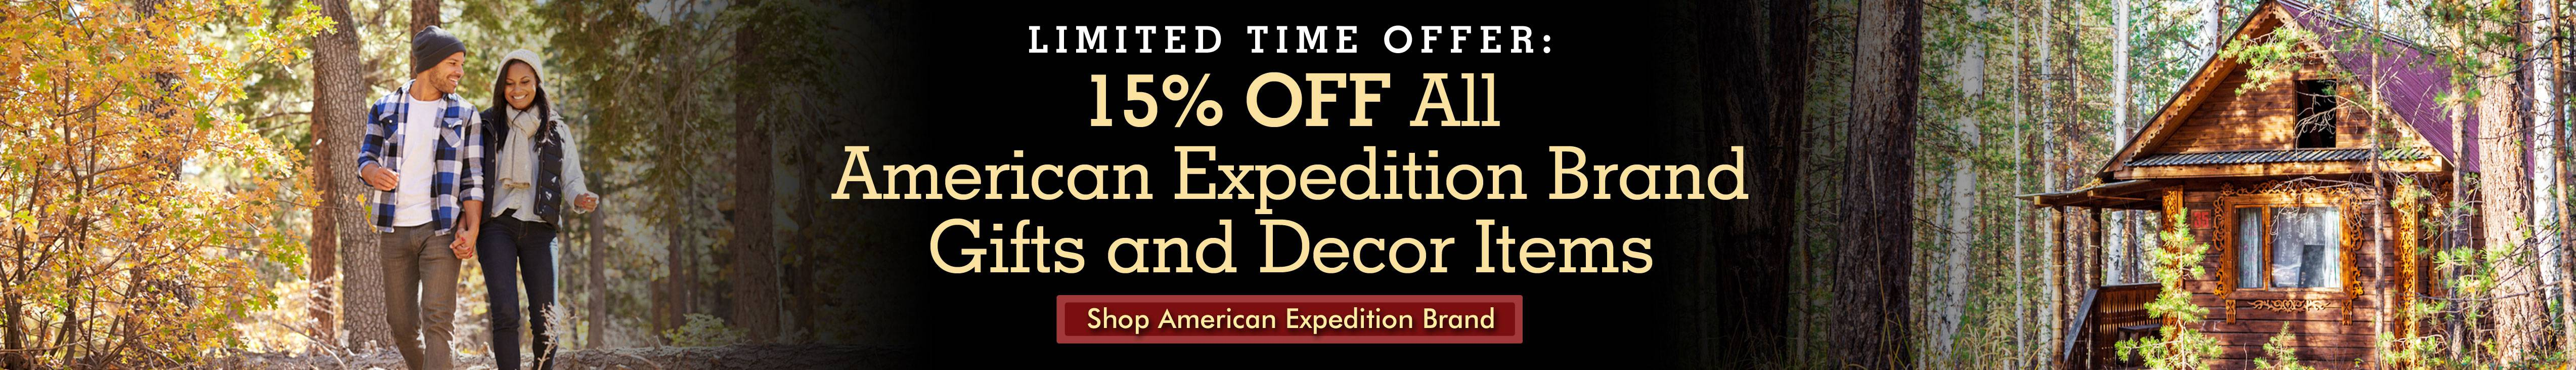 American Expedition Brand Products